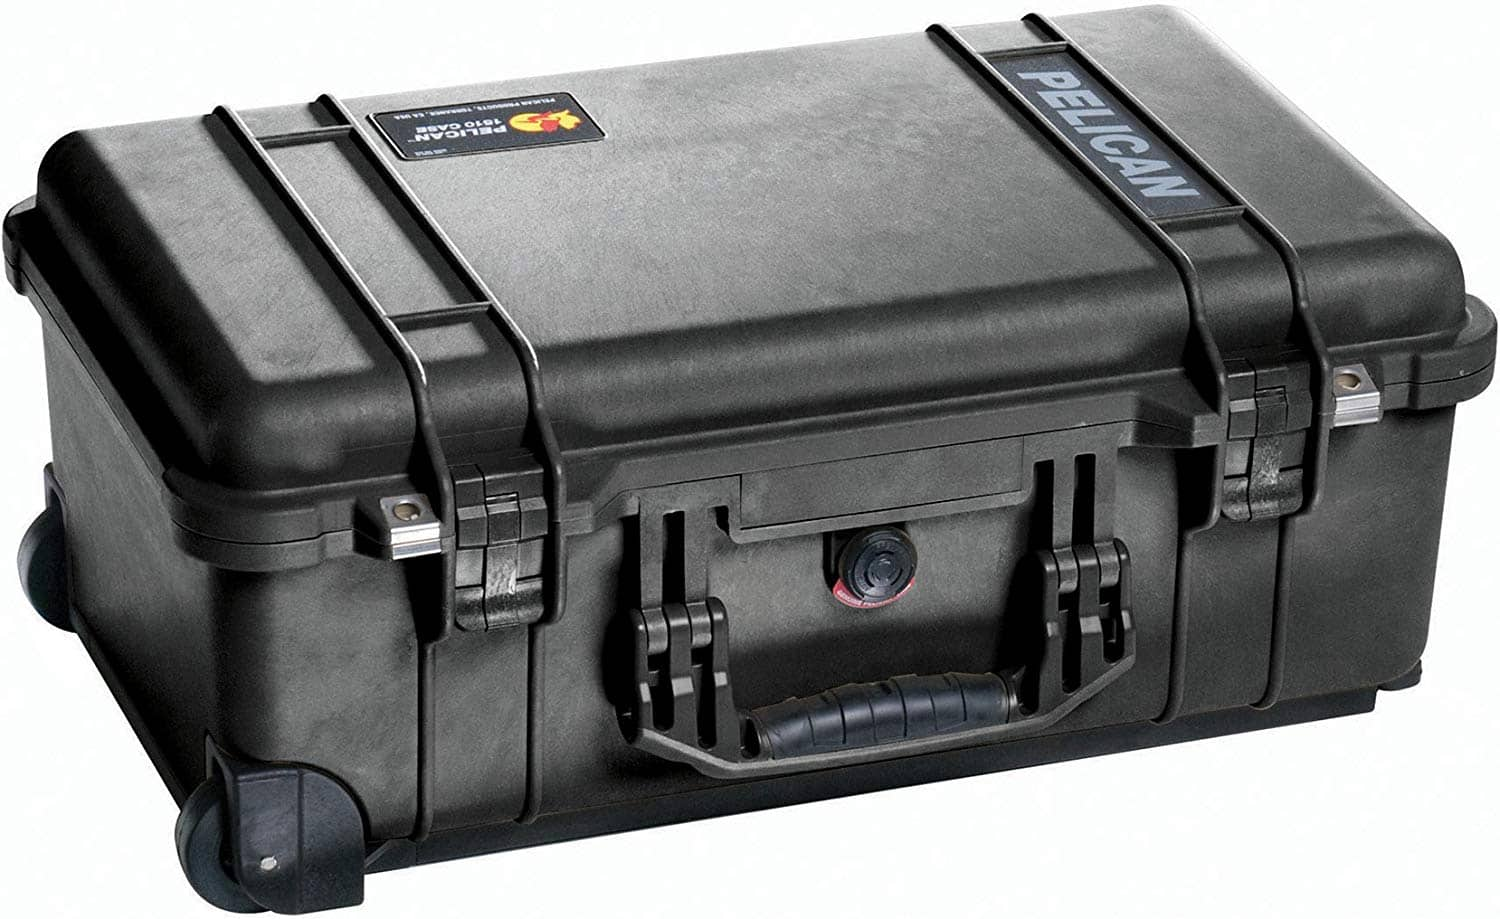 Pelican 1510 Watertight Case w/ Padded Dividers $144 or w